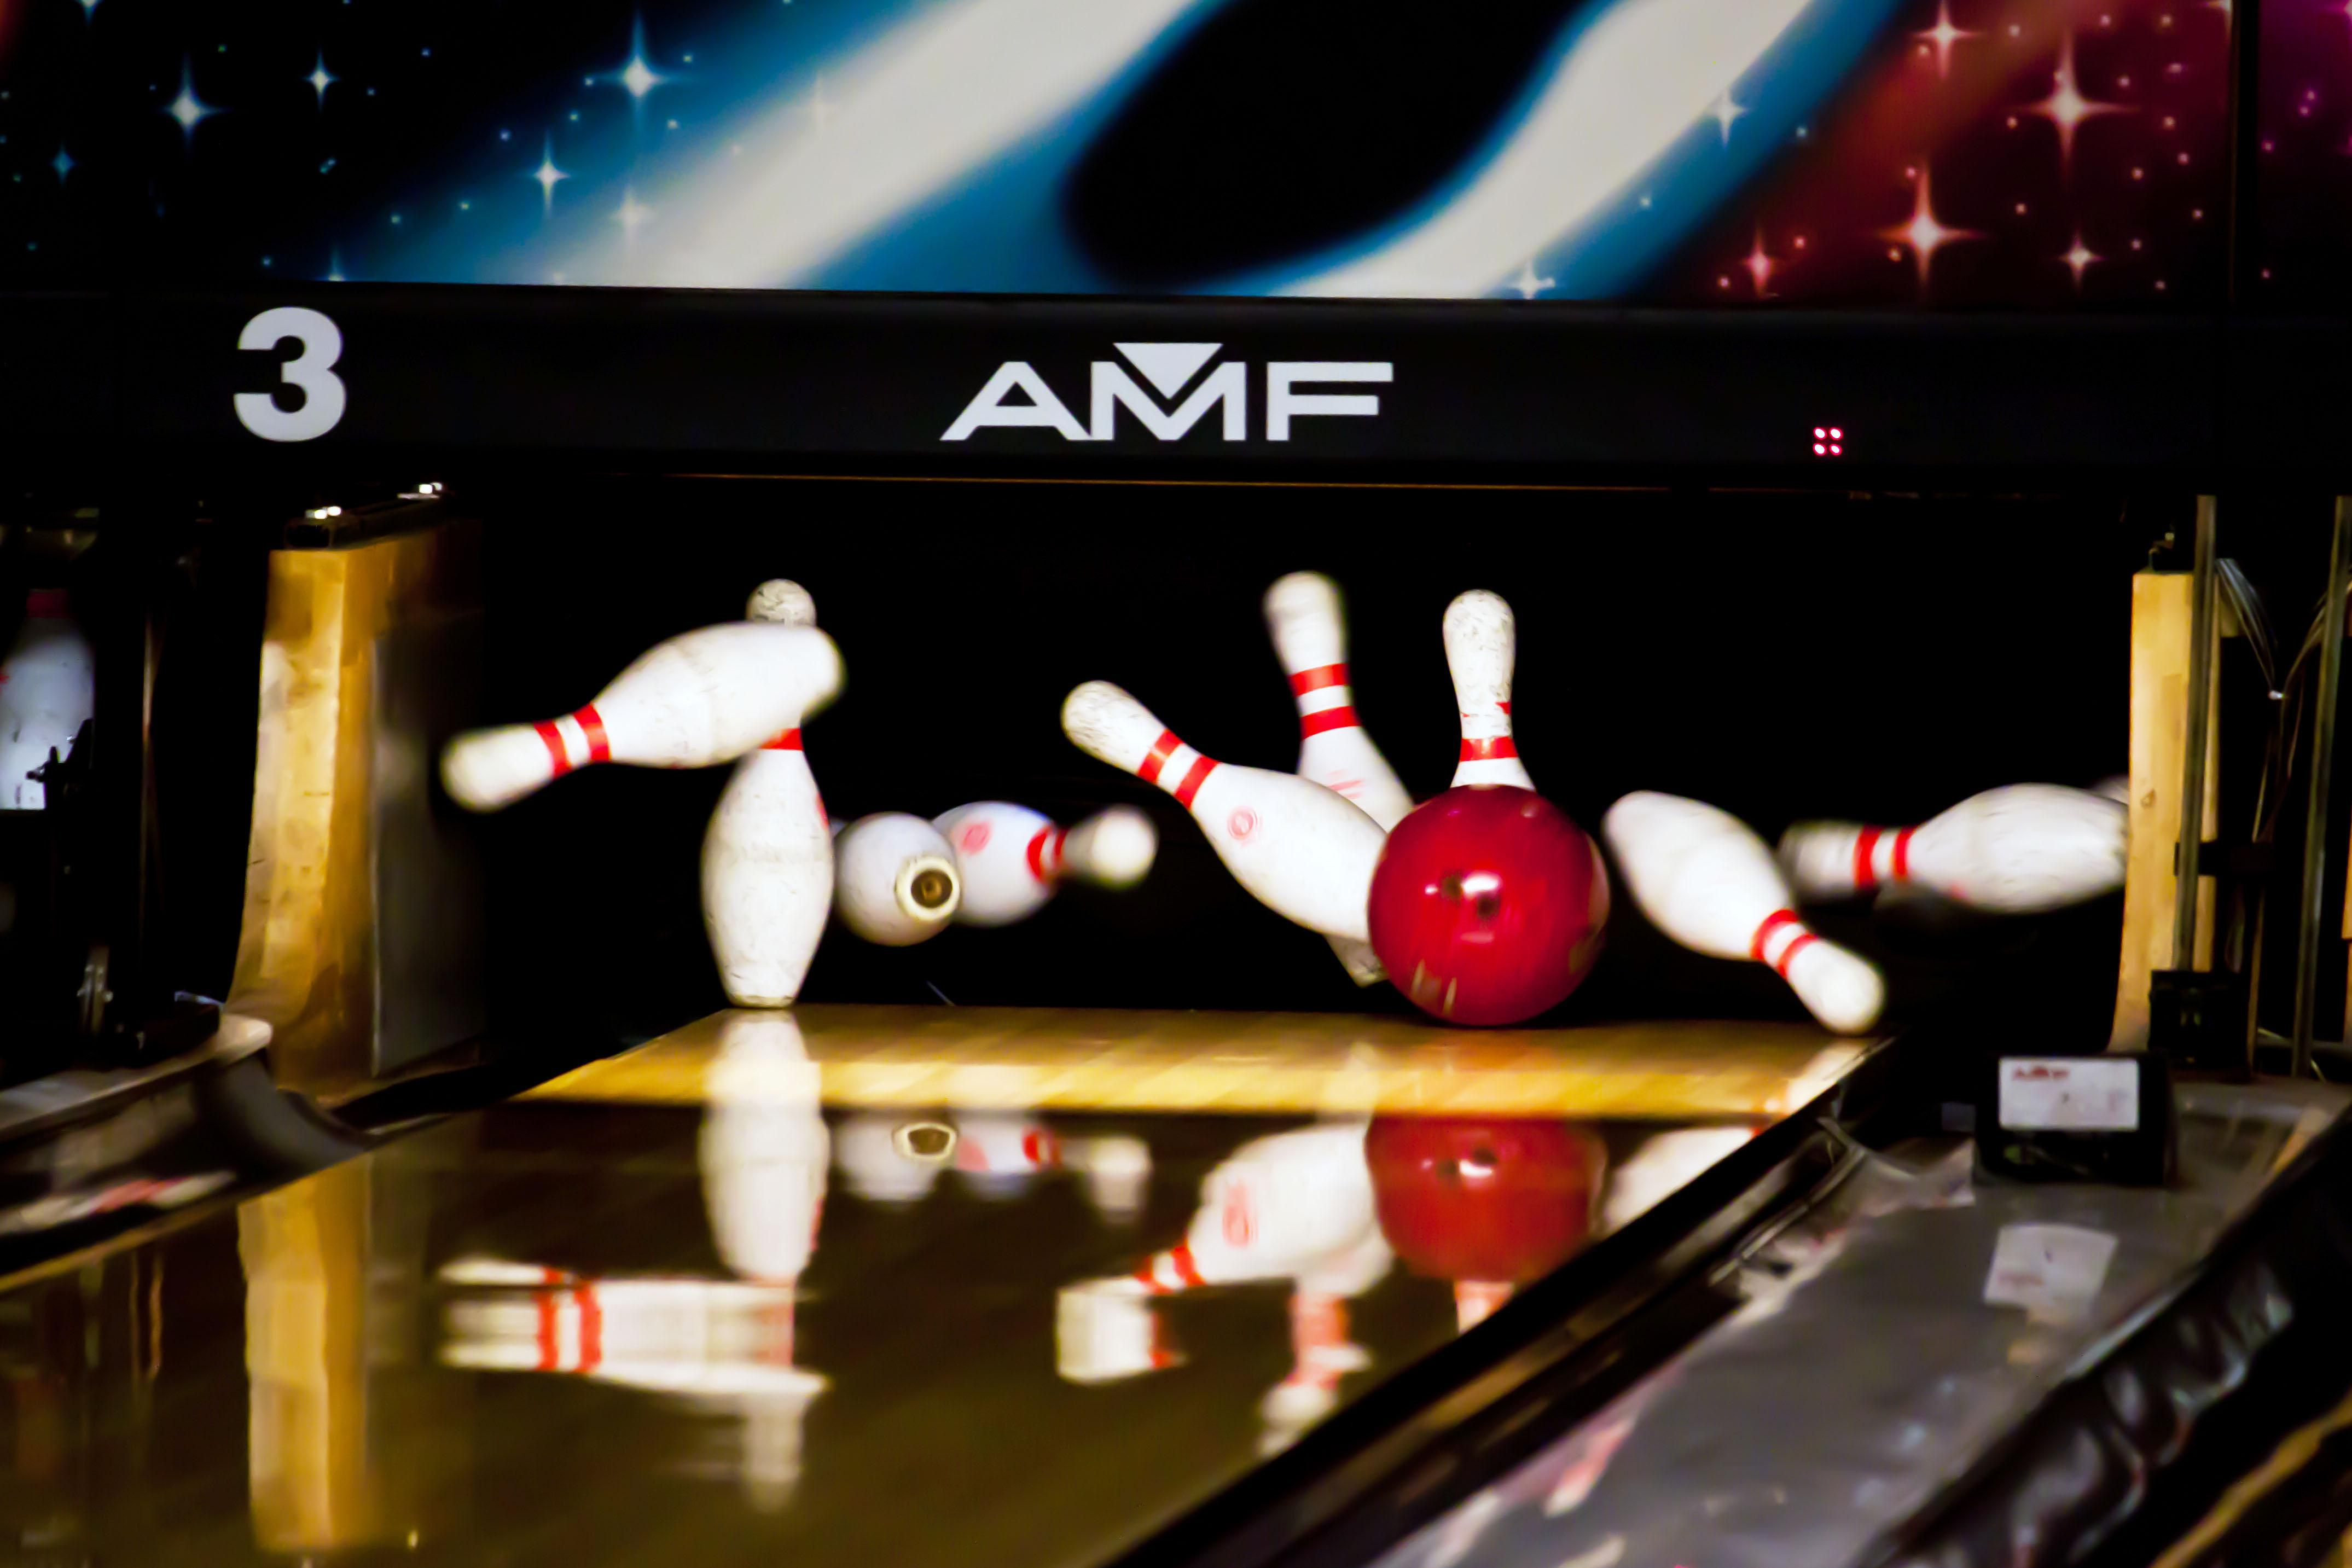 It Takes 12 Strikes To Reach A Perfect 300 Game In Bowling